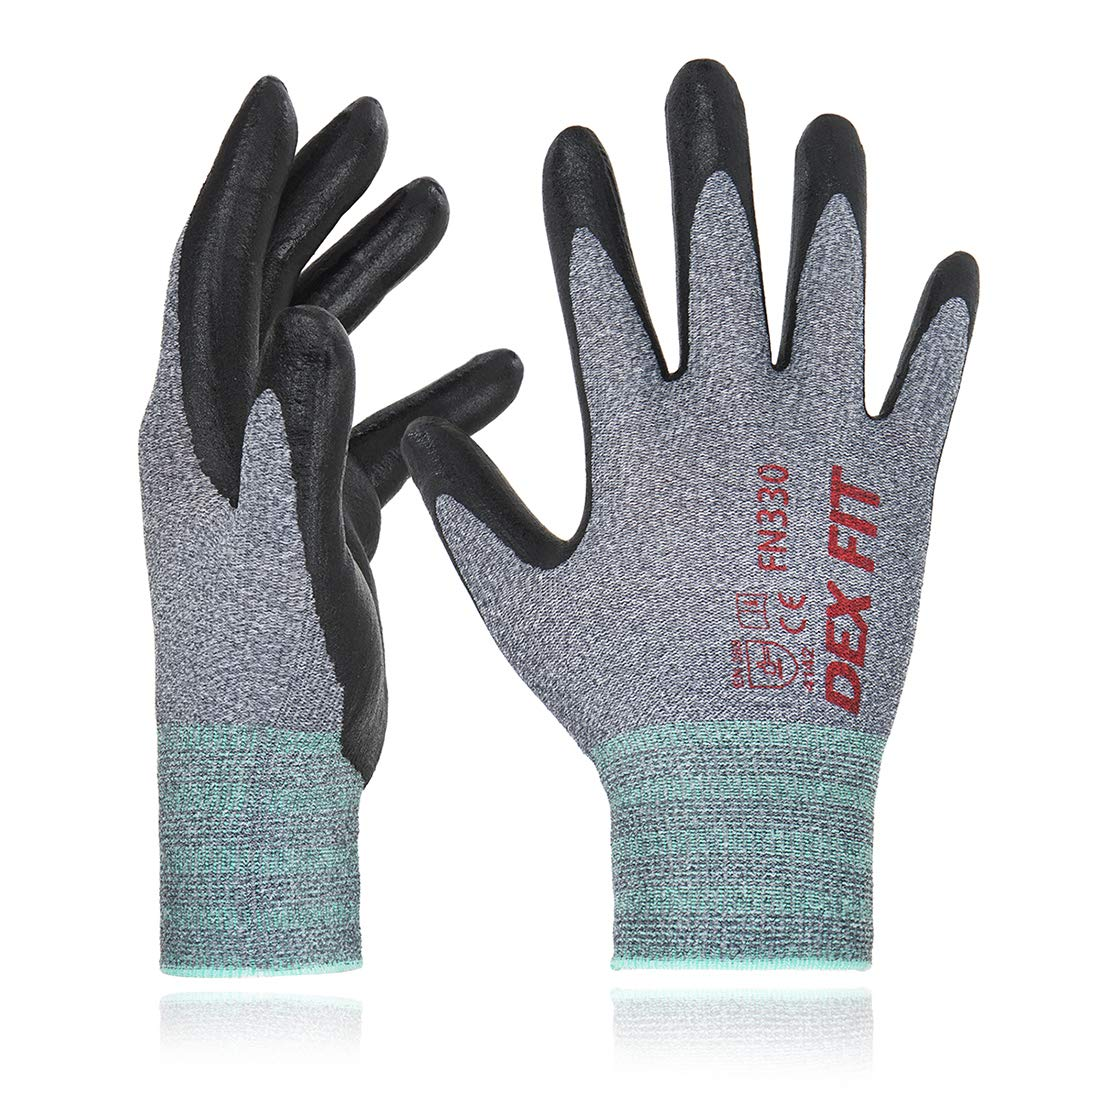 DEX FIT Nitrile Work Gloves FN330, 3D Comfort Stretch Fit, Durable Power Grip Foam Coated, Smart Touch, Thin Machine Washable, Grey Small 3 Pairs Pack